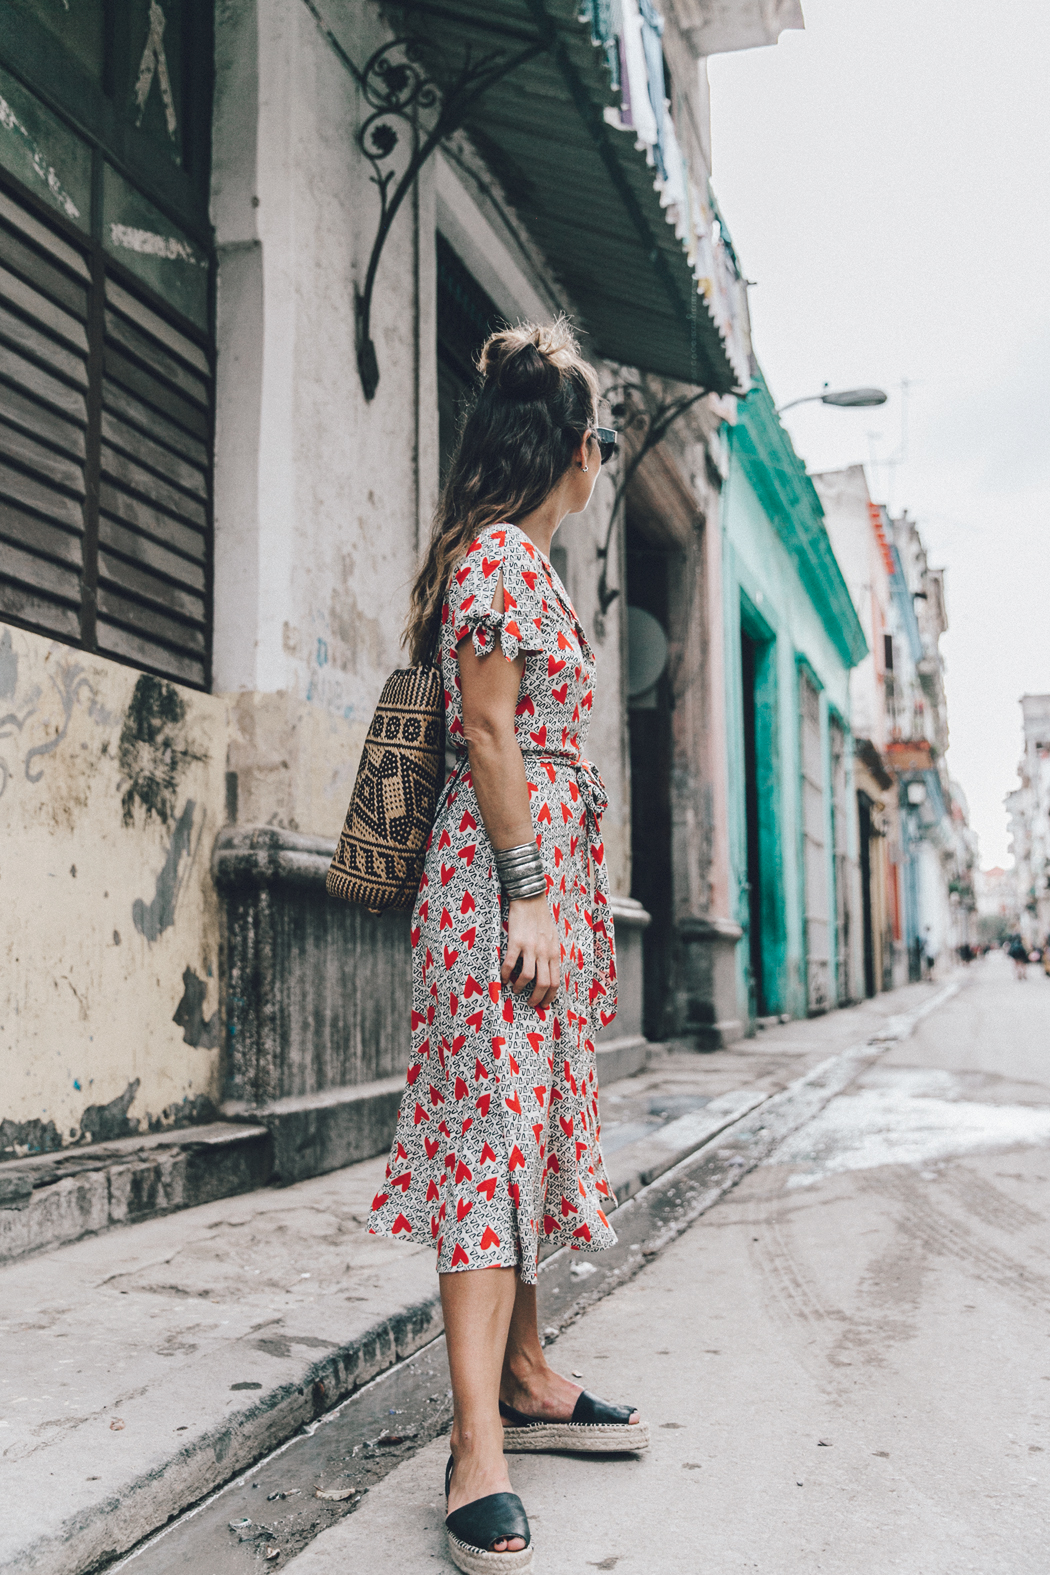 Cuba-La_Habana_Vieja-Hearts_Dress-Styled_By_Me-Aloha_Espadrilles-Outfit-Street_Style-Dress-Backpack-20